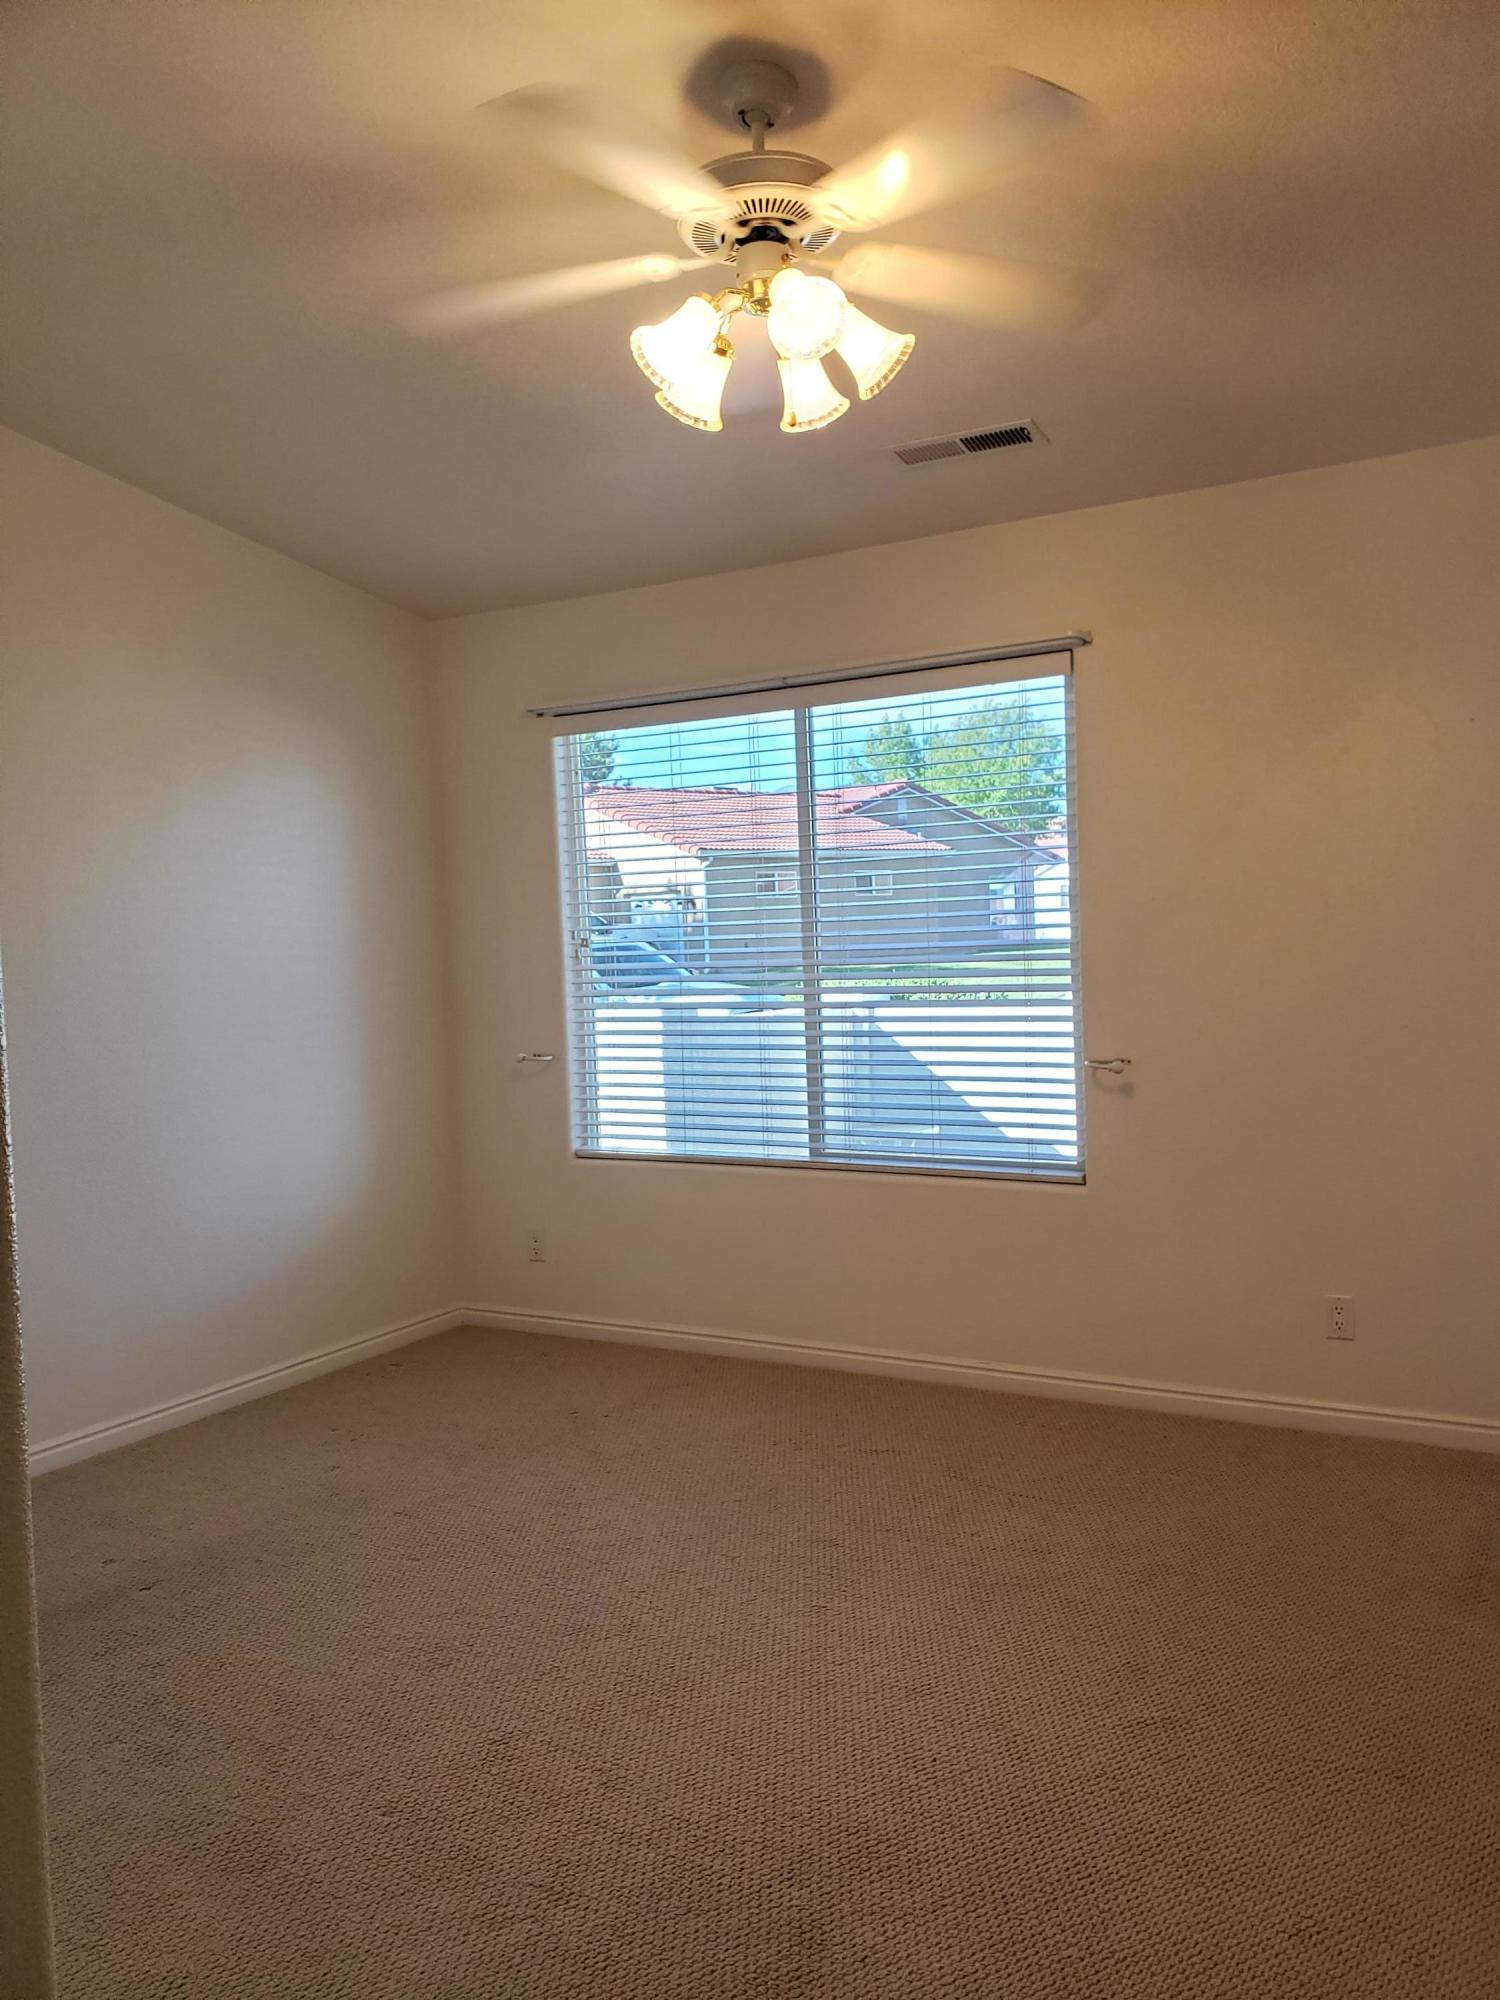 *REDUCED PRICED, 10,000 Under* Padre Lakes.  Friendly neighborhood.  Features Tinted Windows, Sunscape, Cooling Film, Jetted Tub, Water Softener, Large Walk in Closet in Master Bedroom.  Security Doors in Garage, Storm Doors w/Window Screens, Inline Water Filter.  HOA fee covers Insurance, Yard Maintenance, Water, Sewer, Garbage, Swimming Pool & Club House.  *Furniture Package Avai